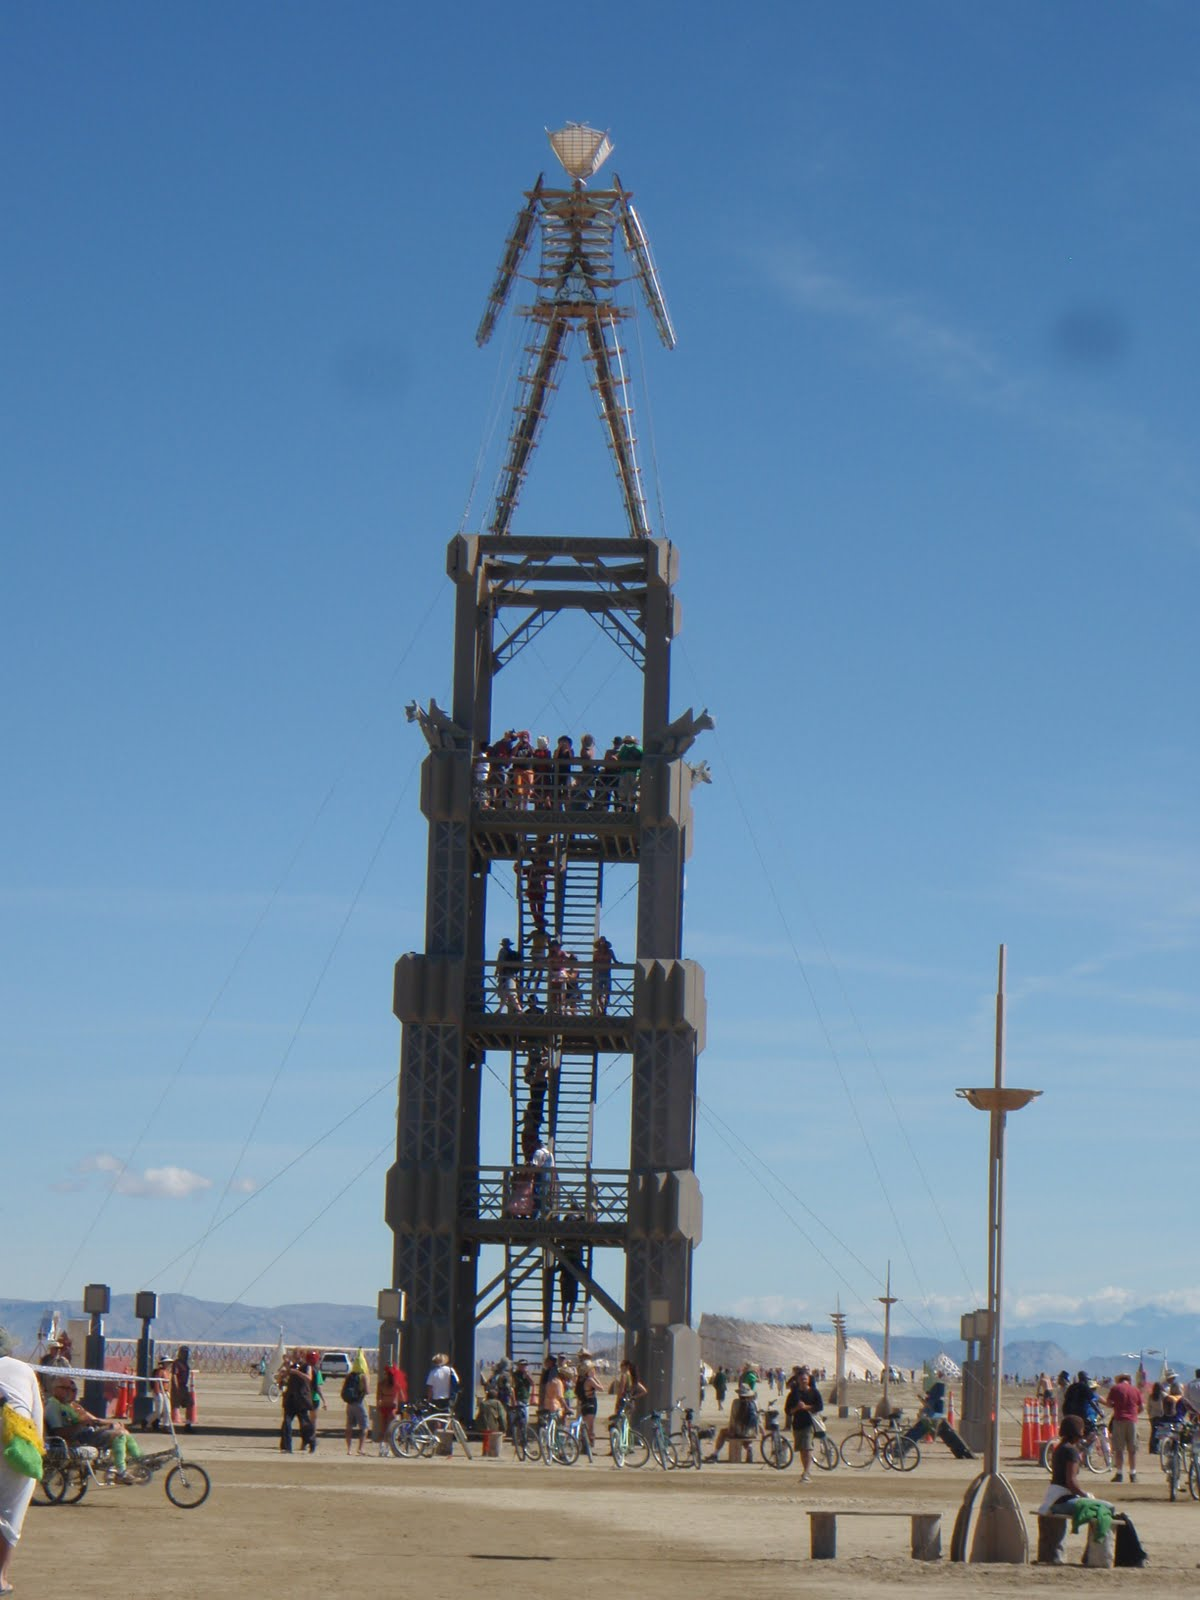 ... gear and heading out to Burning man in the Nevada desert this year!